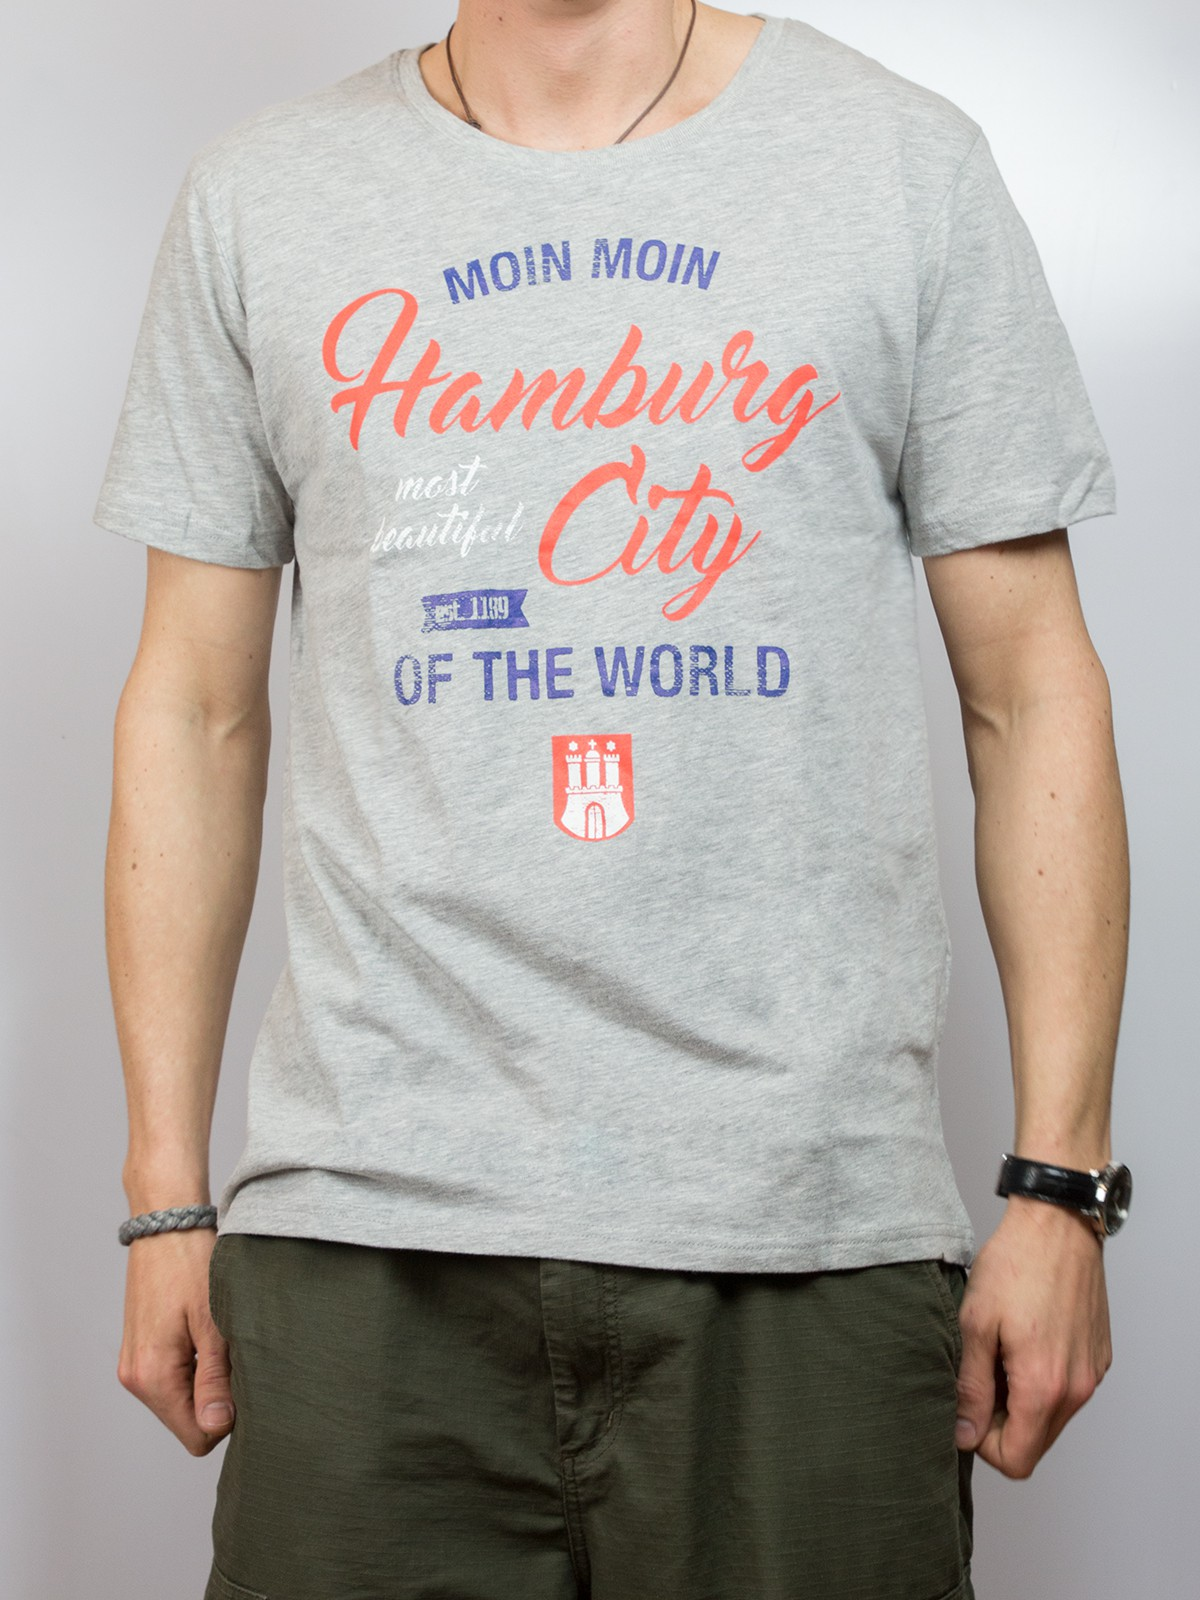 "T-Shirt ""Moin Moin Hamburg City"""